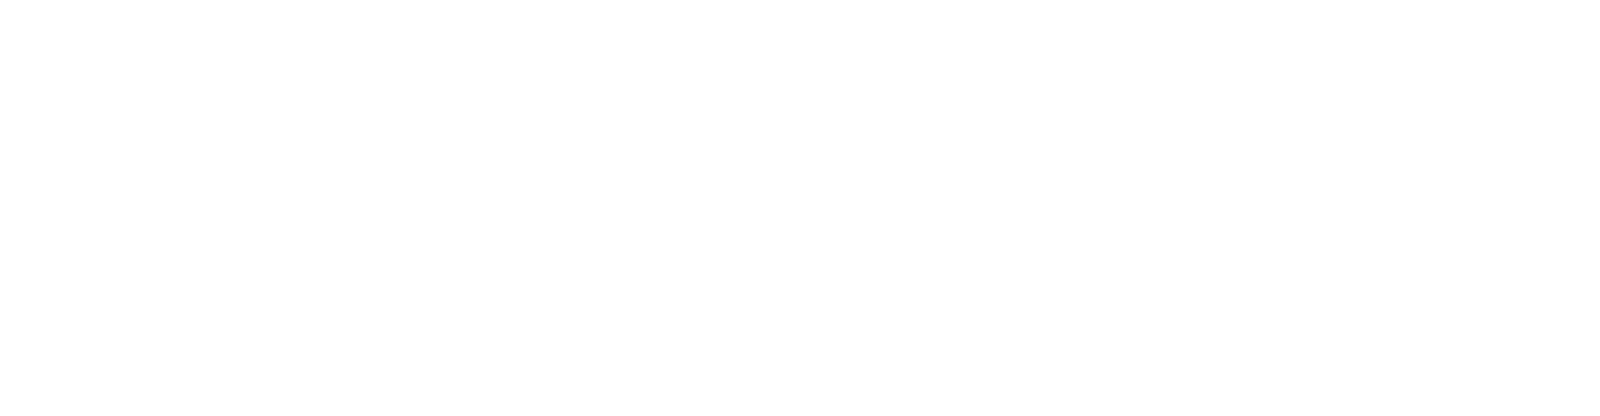 Blogging Duniya » Learn Online With Us